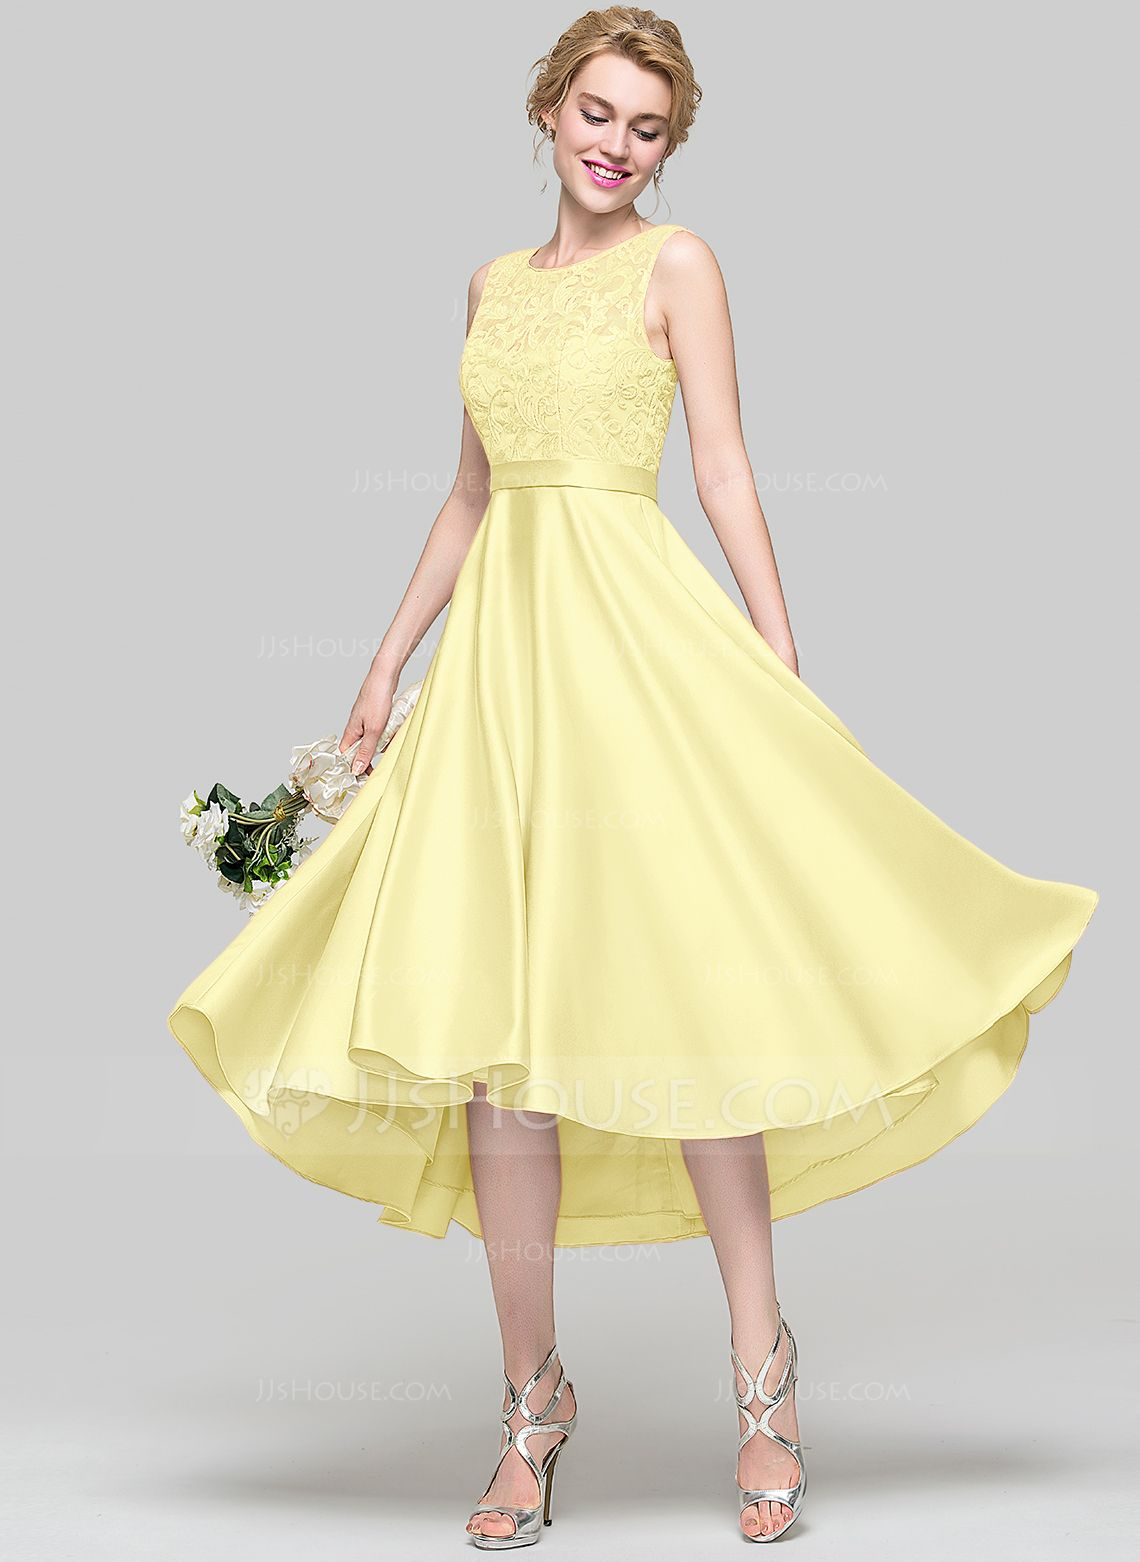 Dress for wedding party for girl  Possible Bridesmaid Dress Daffodil ALinePrincess Scoop Neck